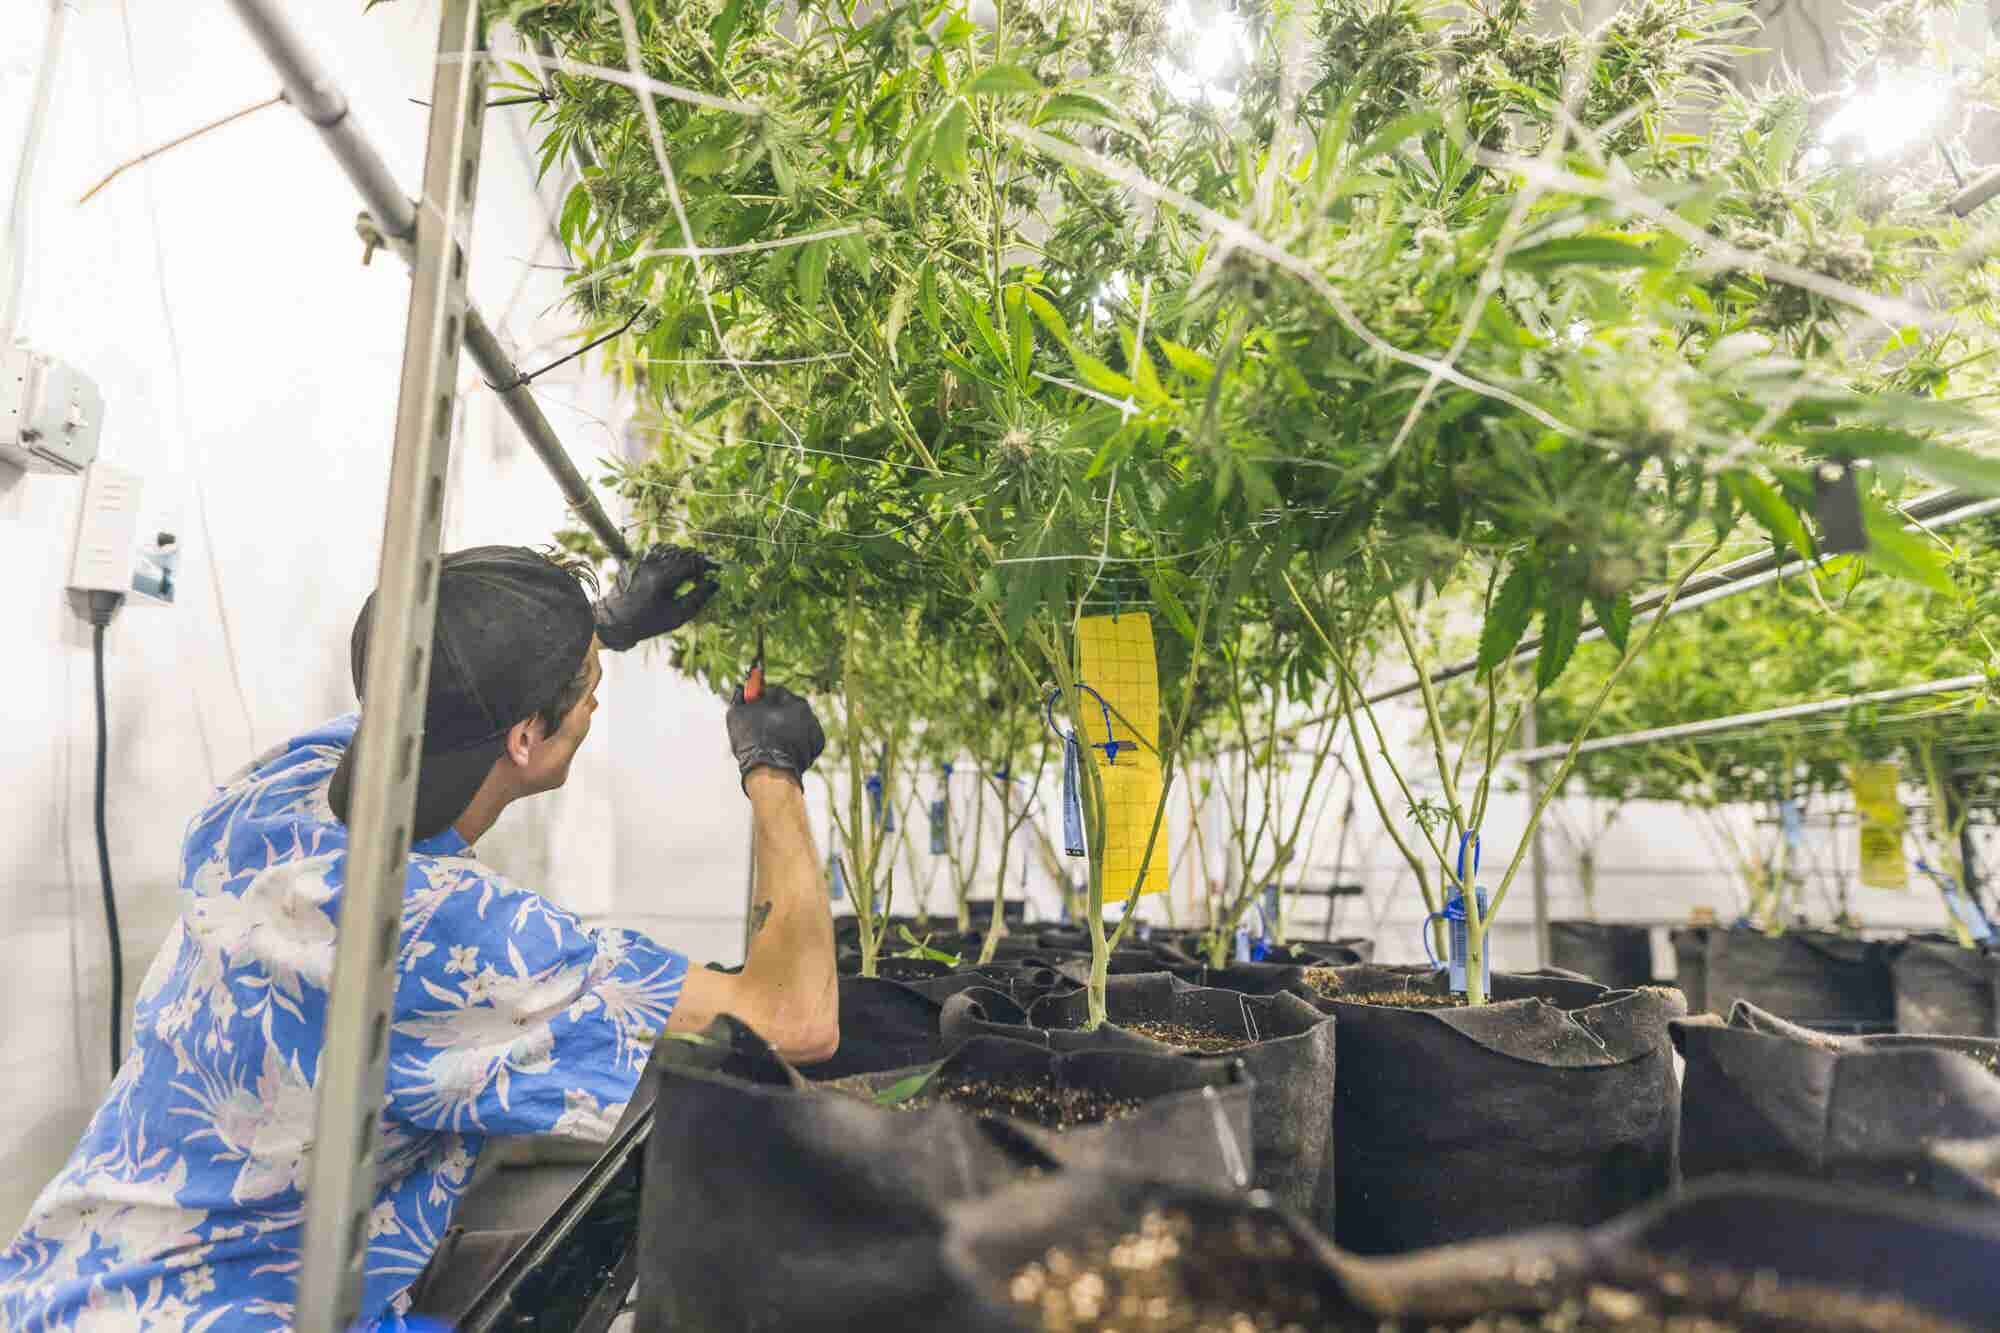 Many Licensed California Marijuana Growers Face Regulatory Roadblocks Getting Their Harvest to Market